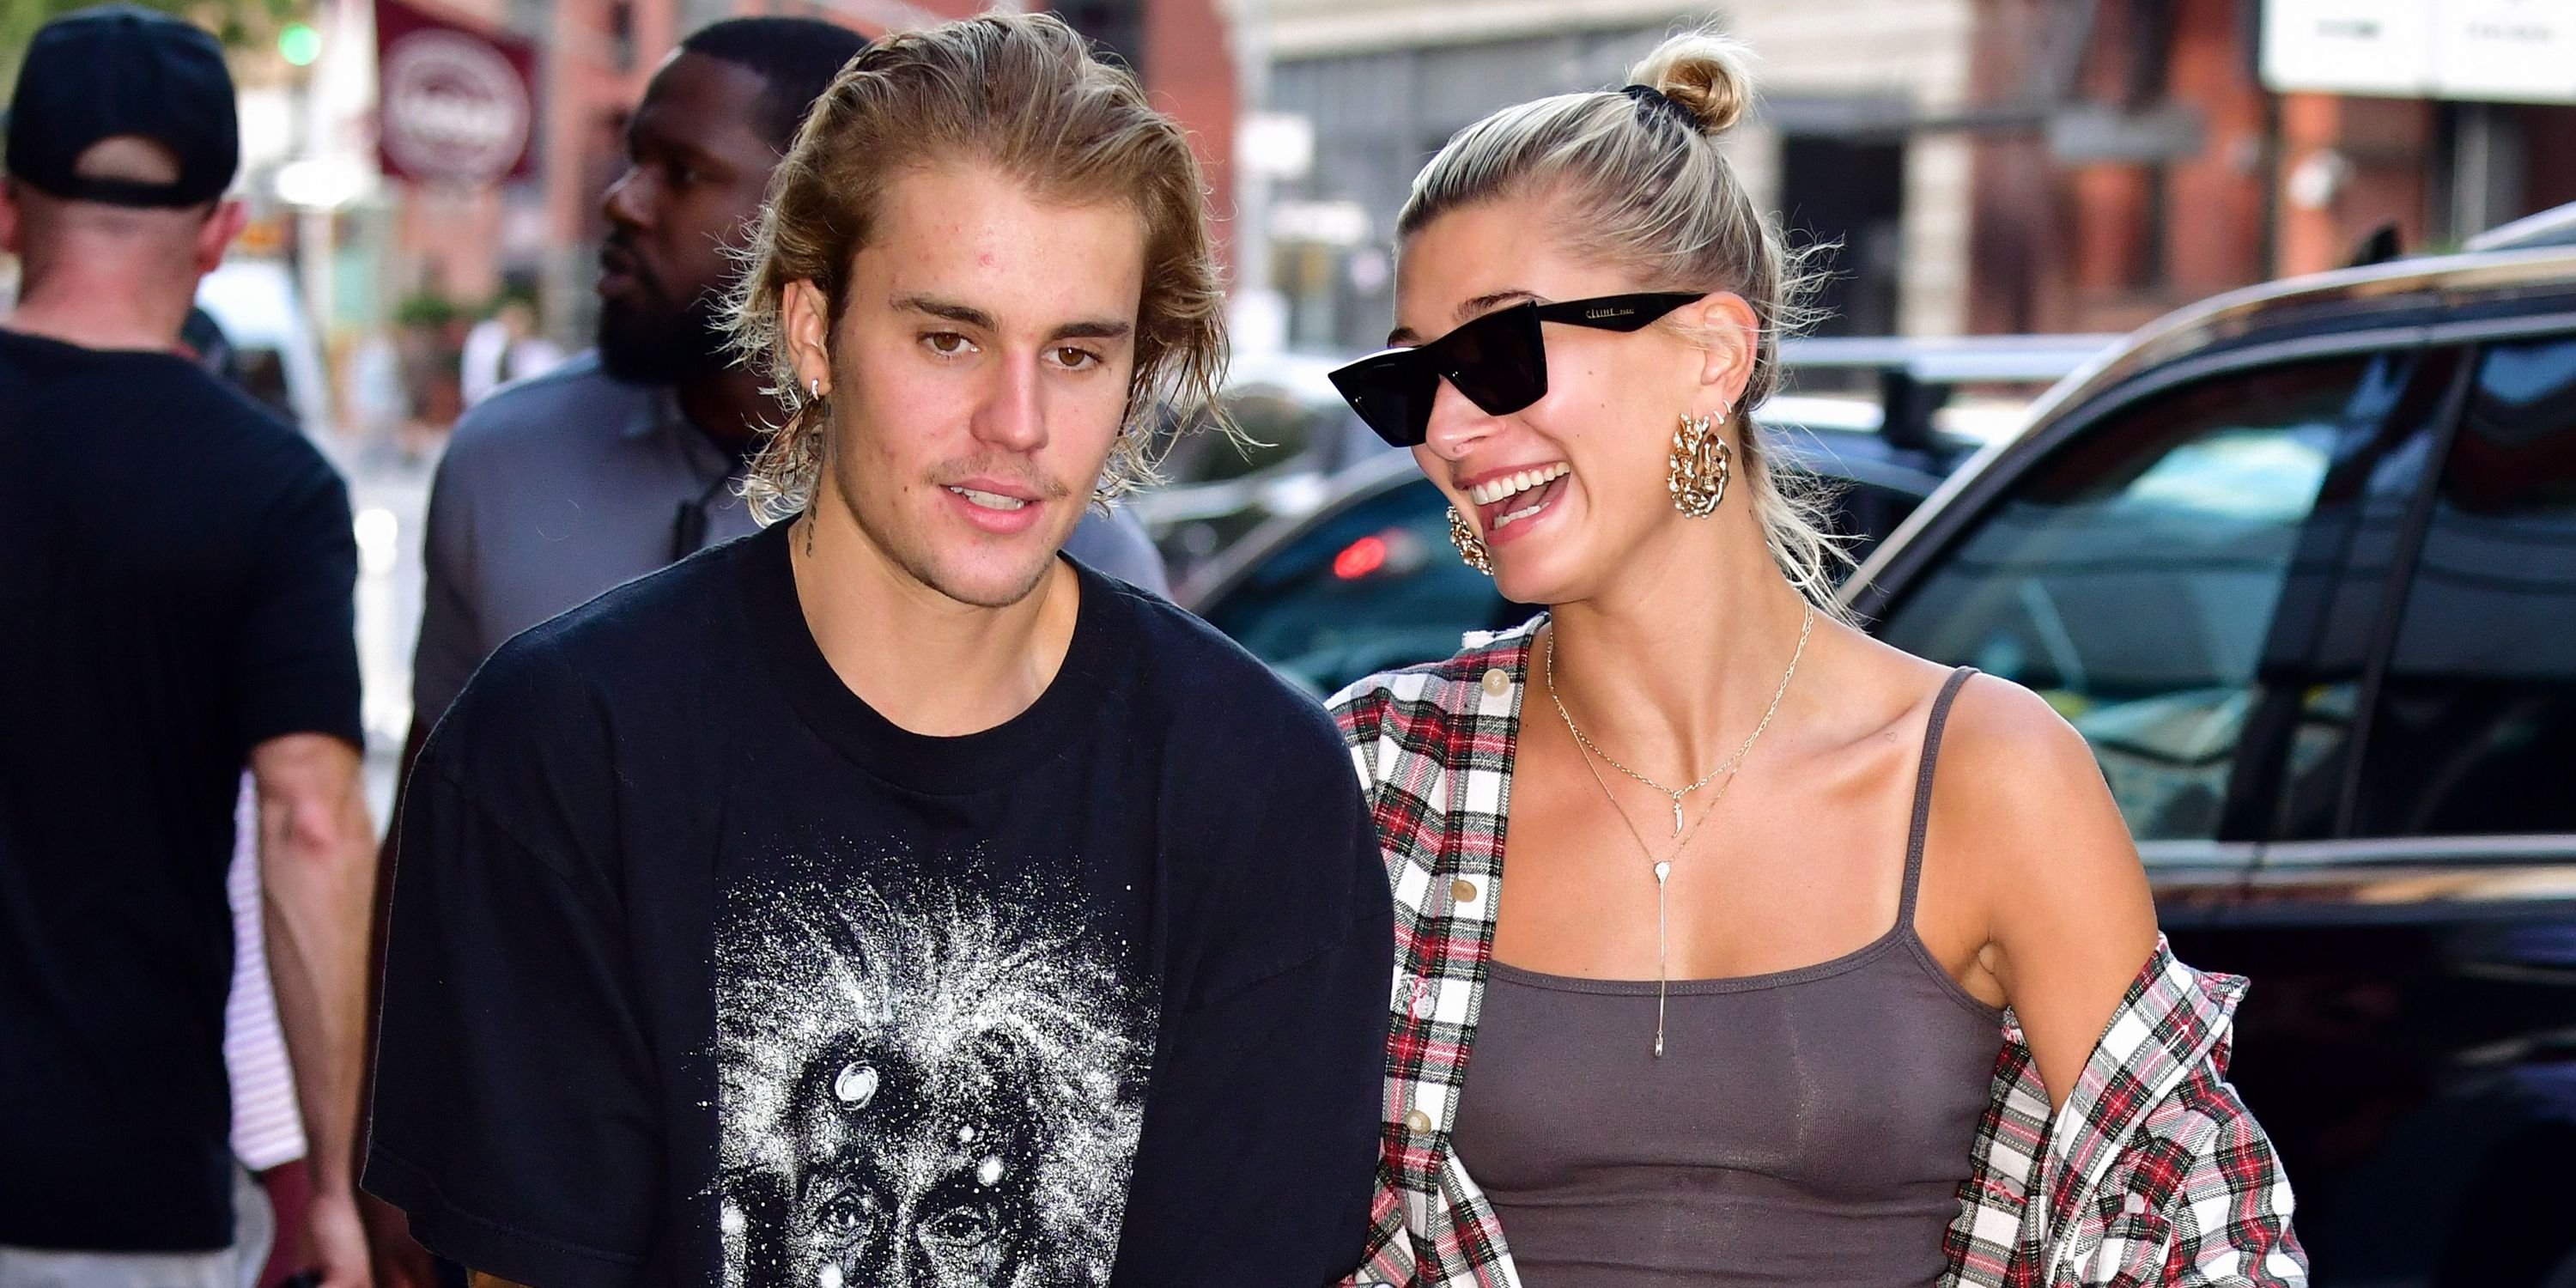 Who is dating justin bieber 2019 purpose